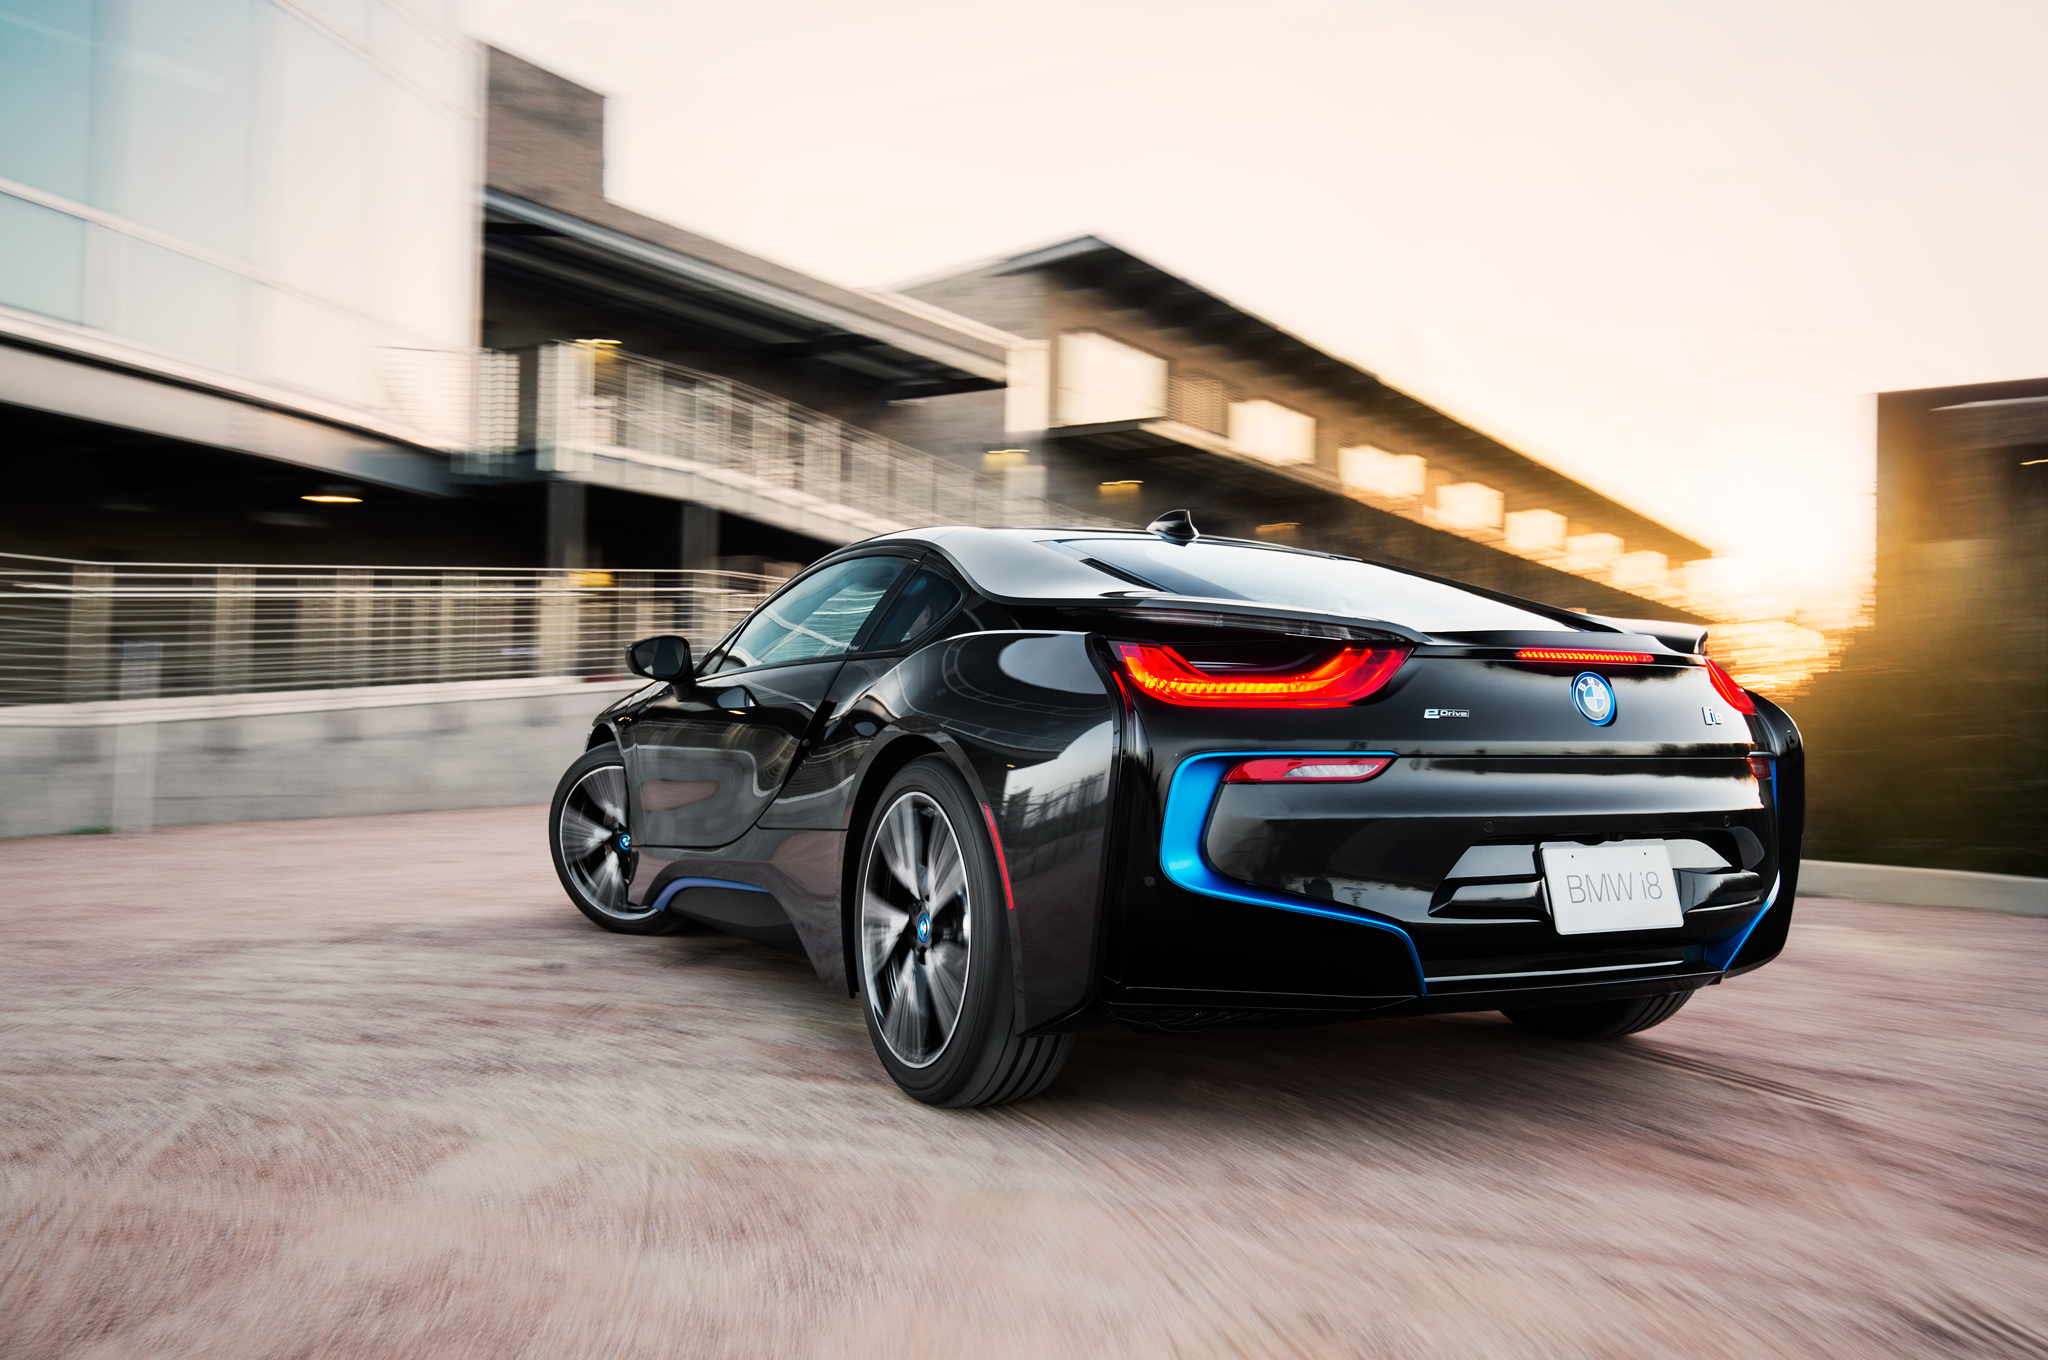 We Hear: BMW i9 Supercar Will Celebrate Automaker's 100th Birthday